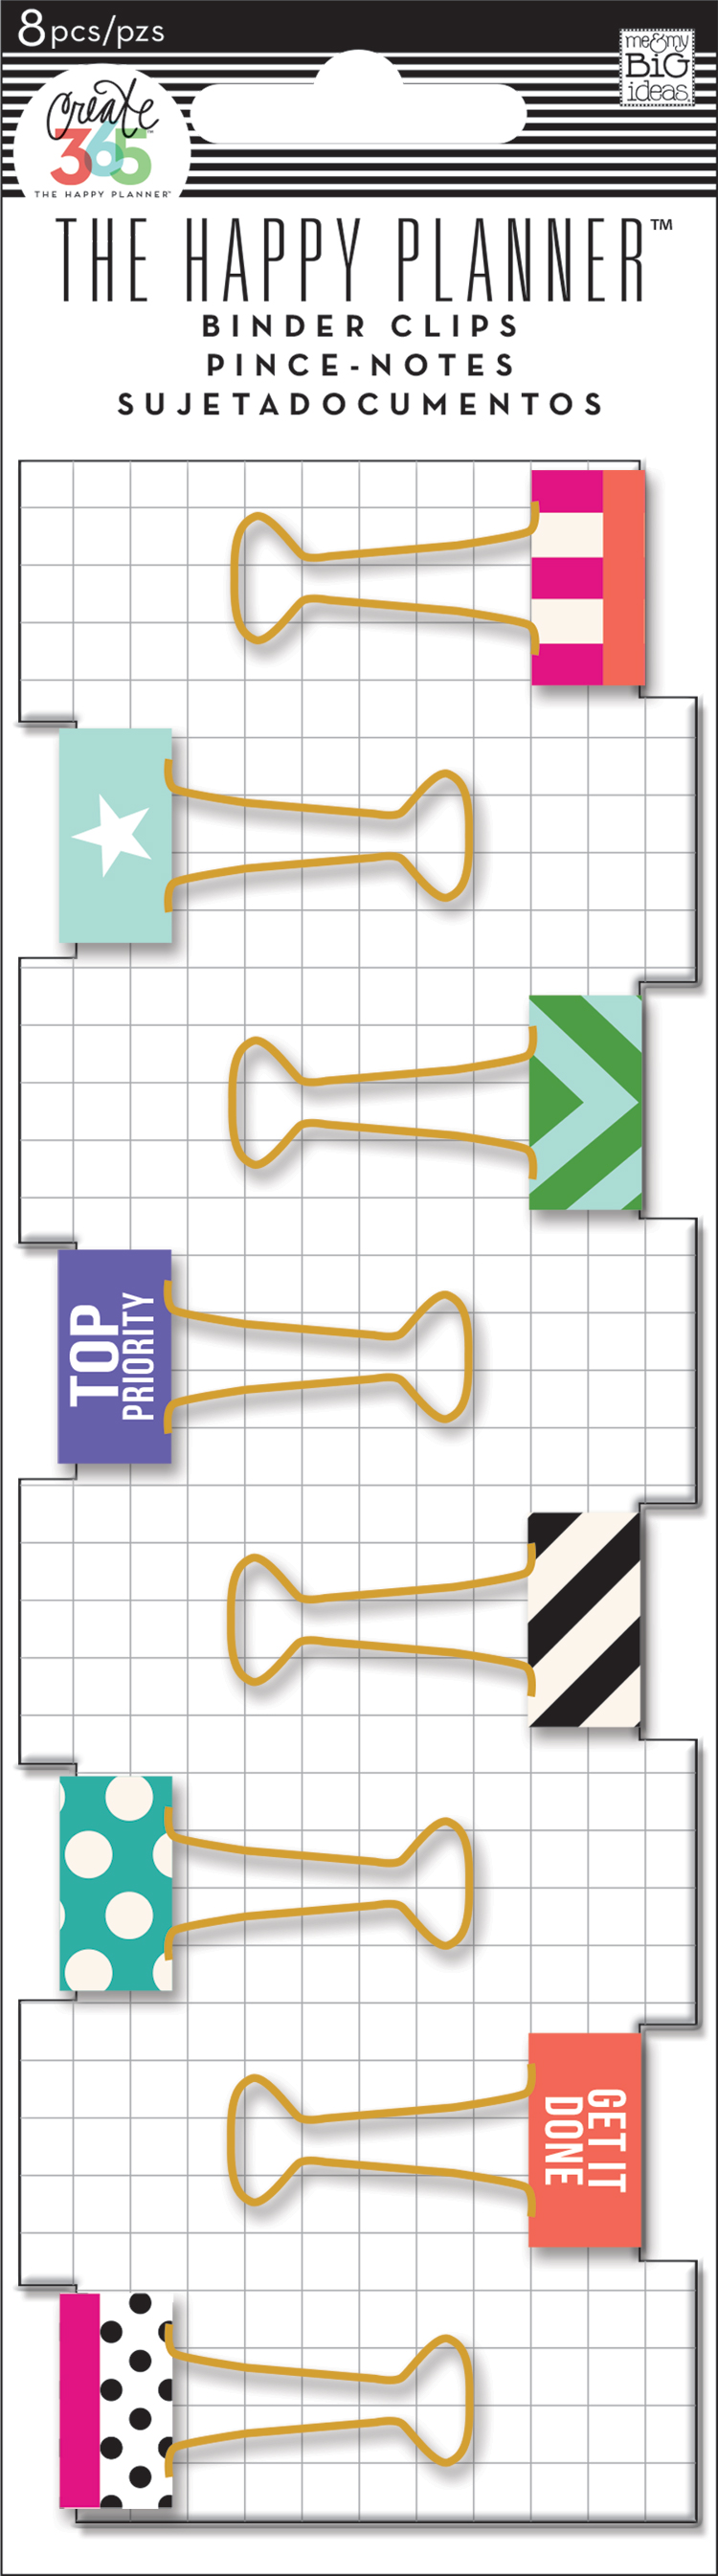 Binder Clips for The Happy Planner™ | me & my BIG ideas.jpg